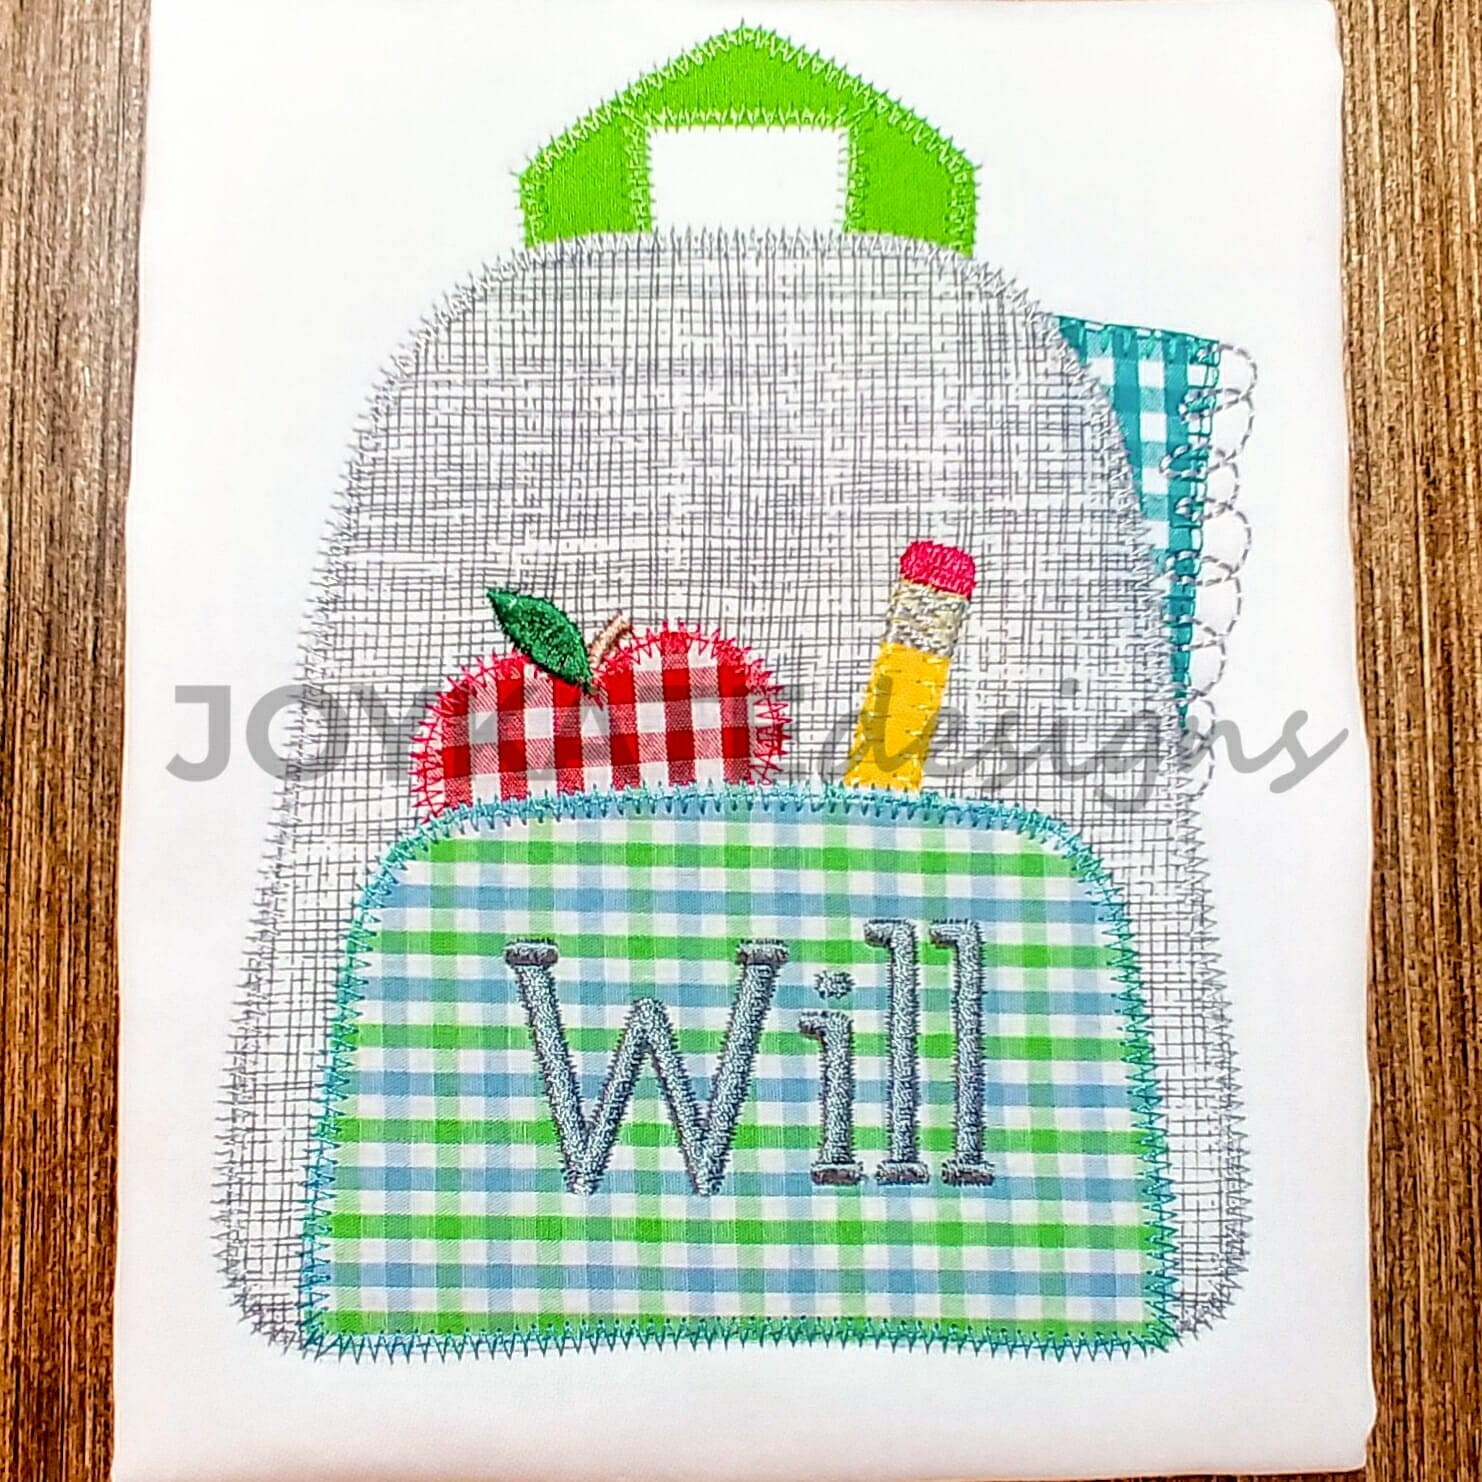 Backpack With School Supplies Applique Embroidery Design